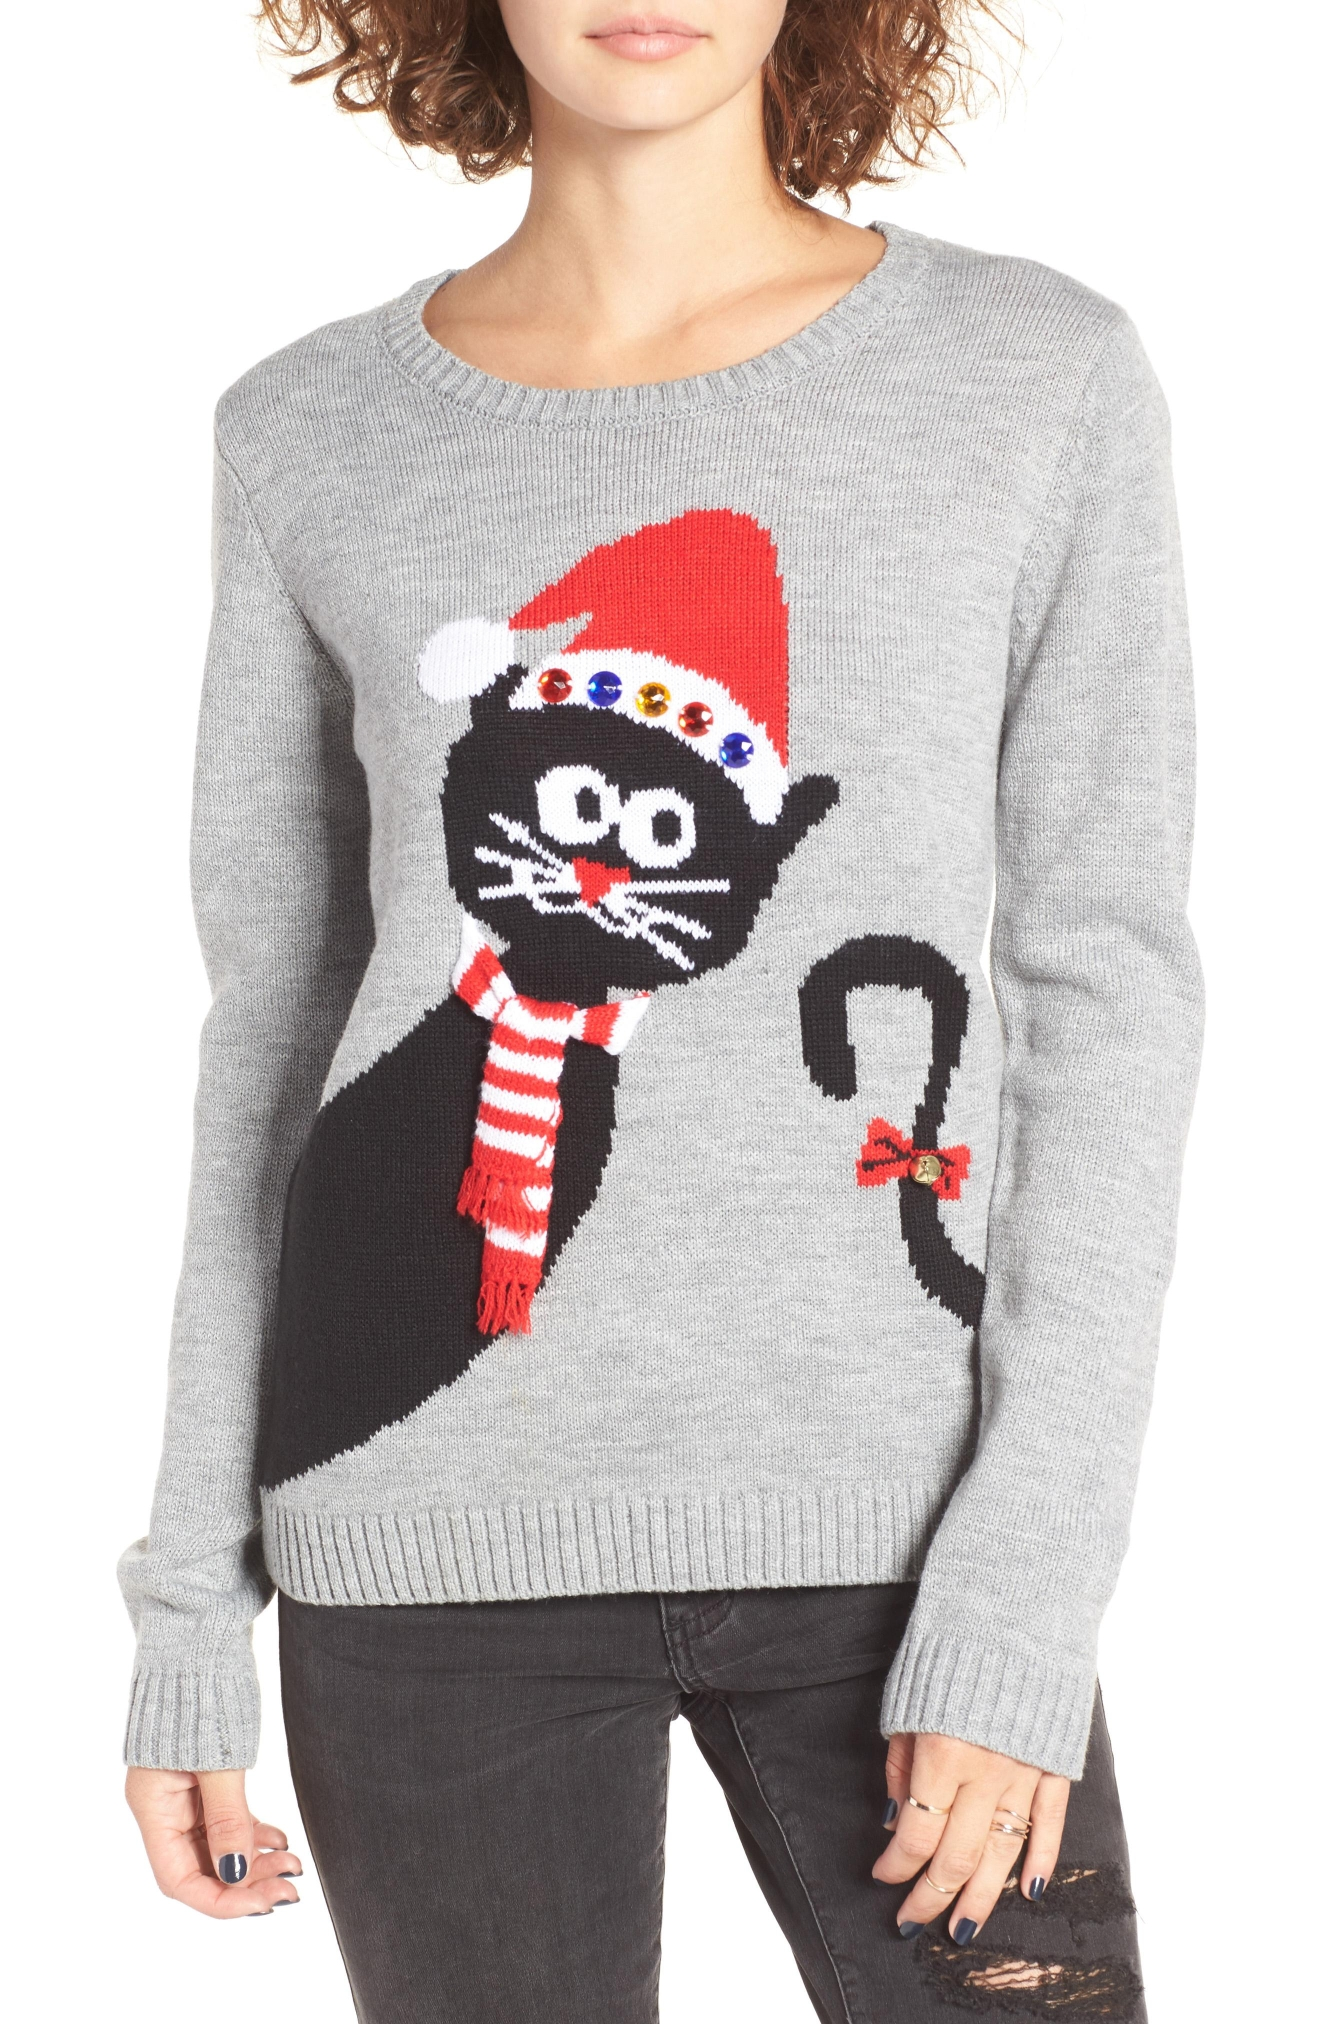 Love By Design Peekaboo Cat Christmas Sweater, $39(Photo: Nordstrom)